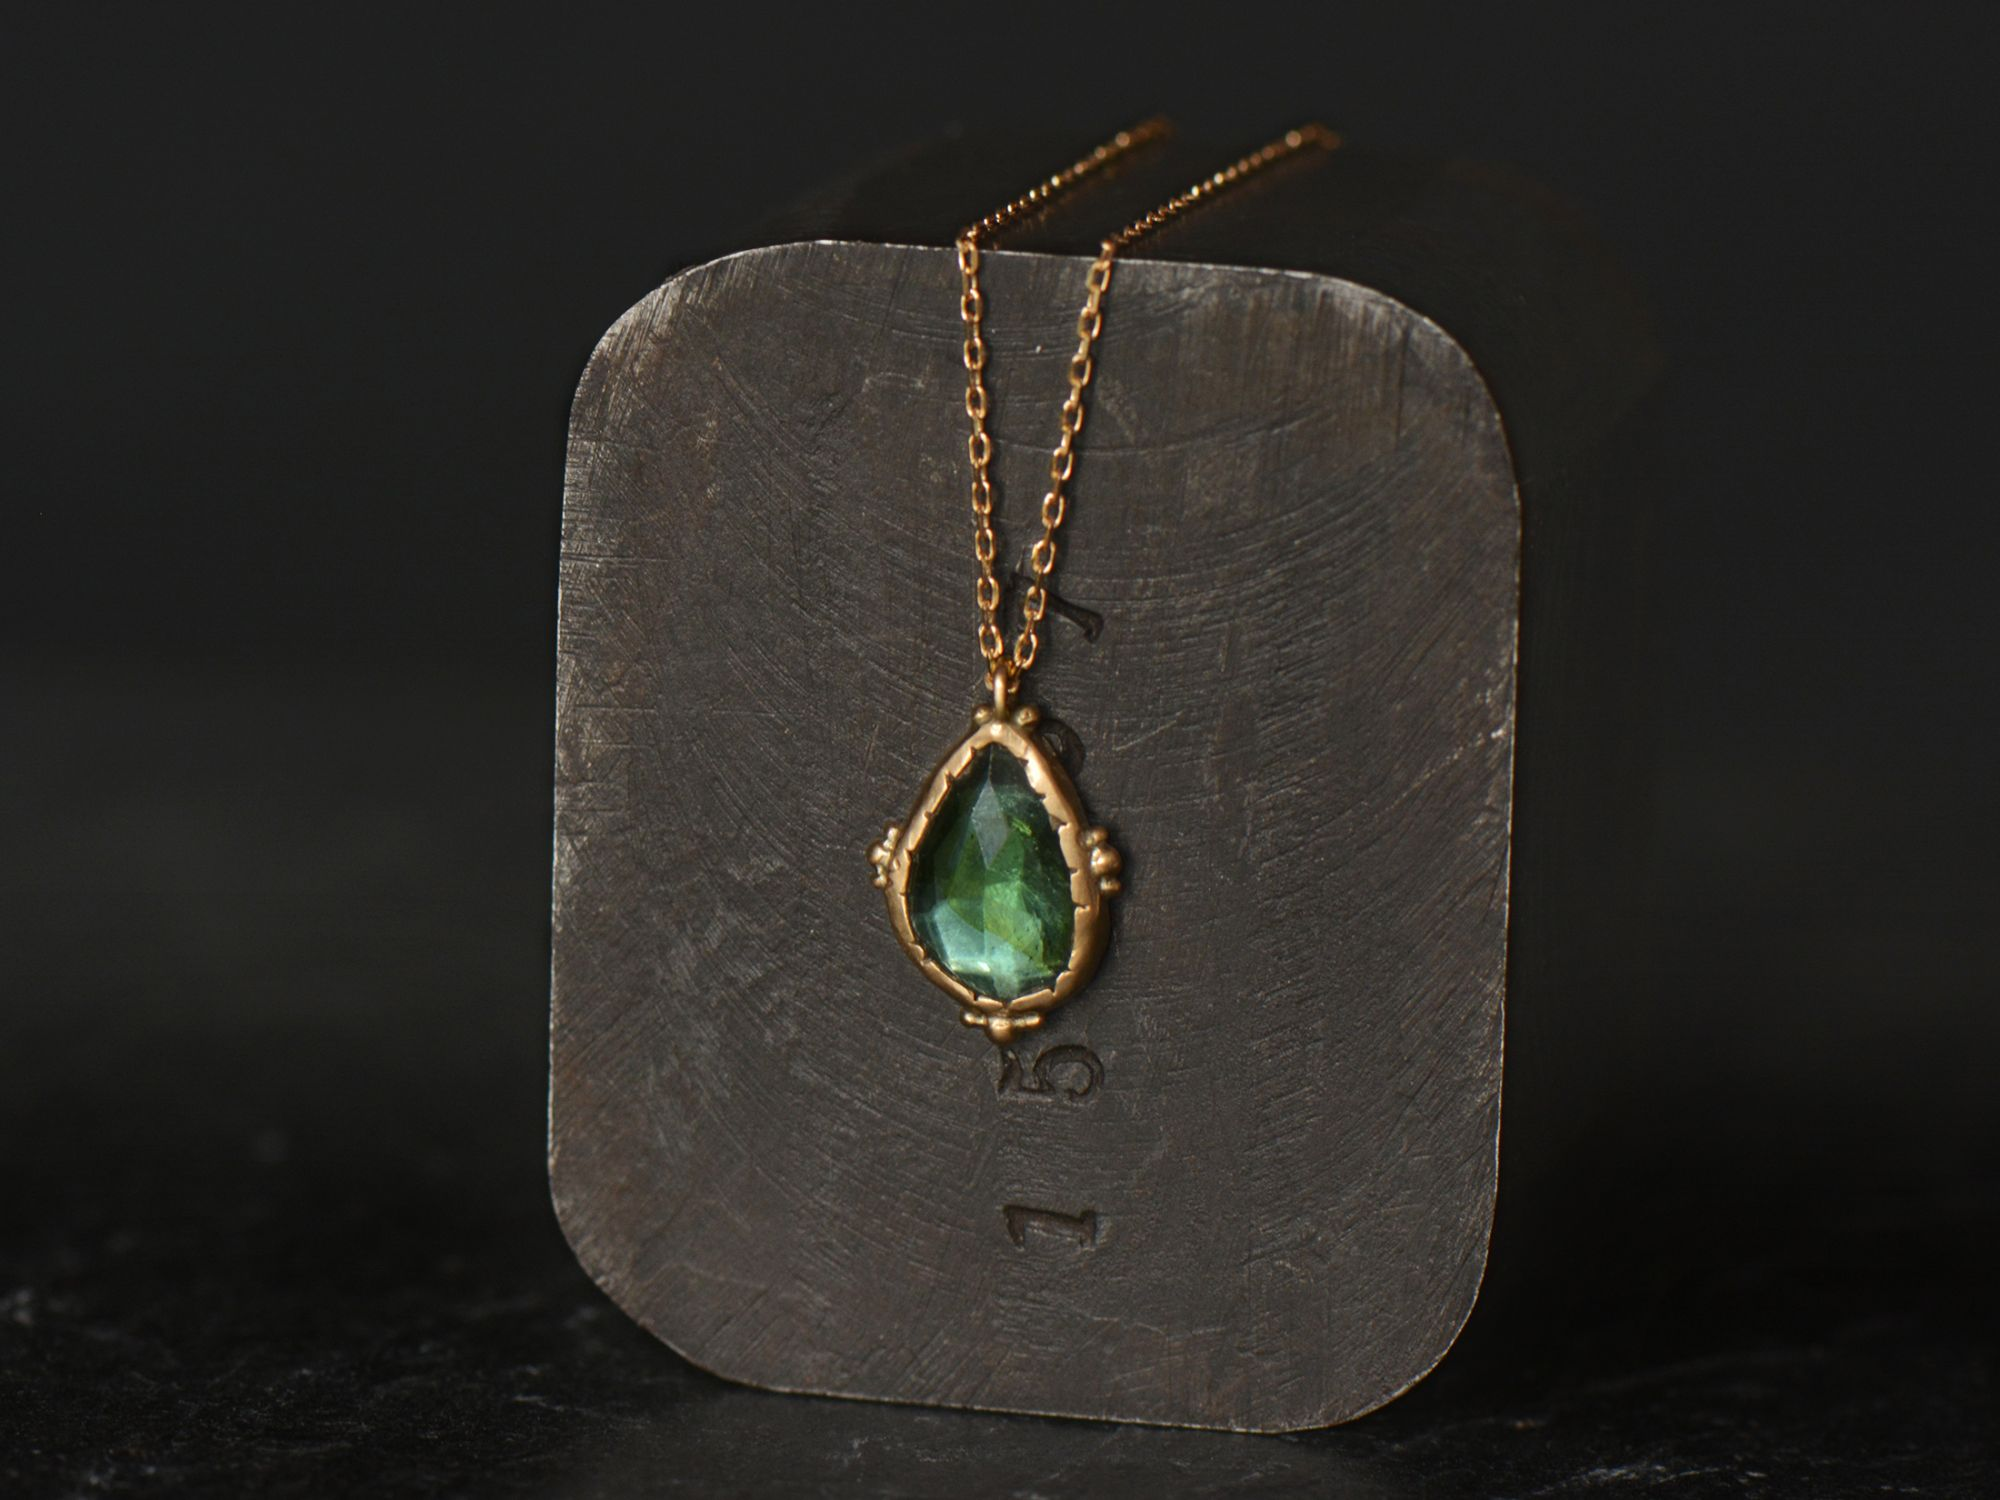 Green rosecut tourmaline and yellow gold Enigma necklace by Emmanuelle Zysman